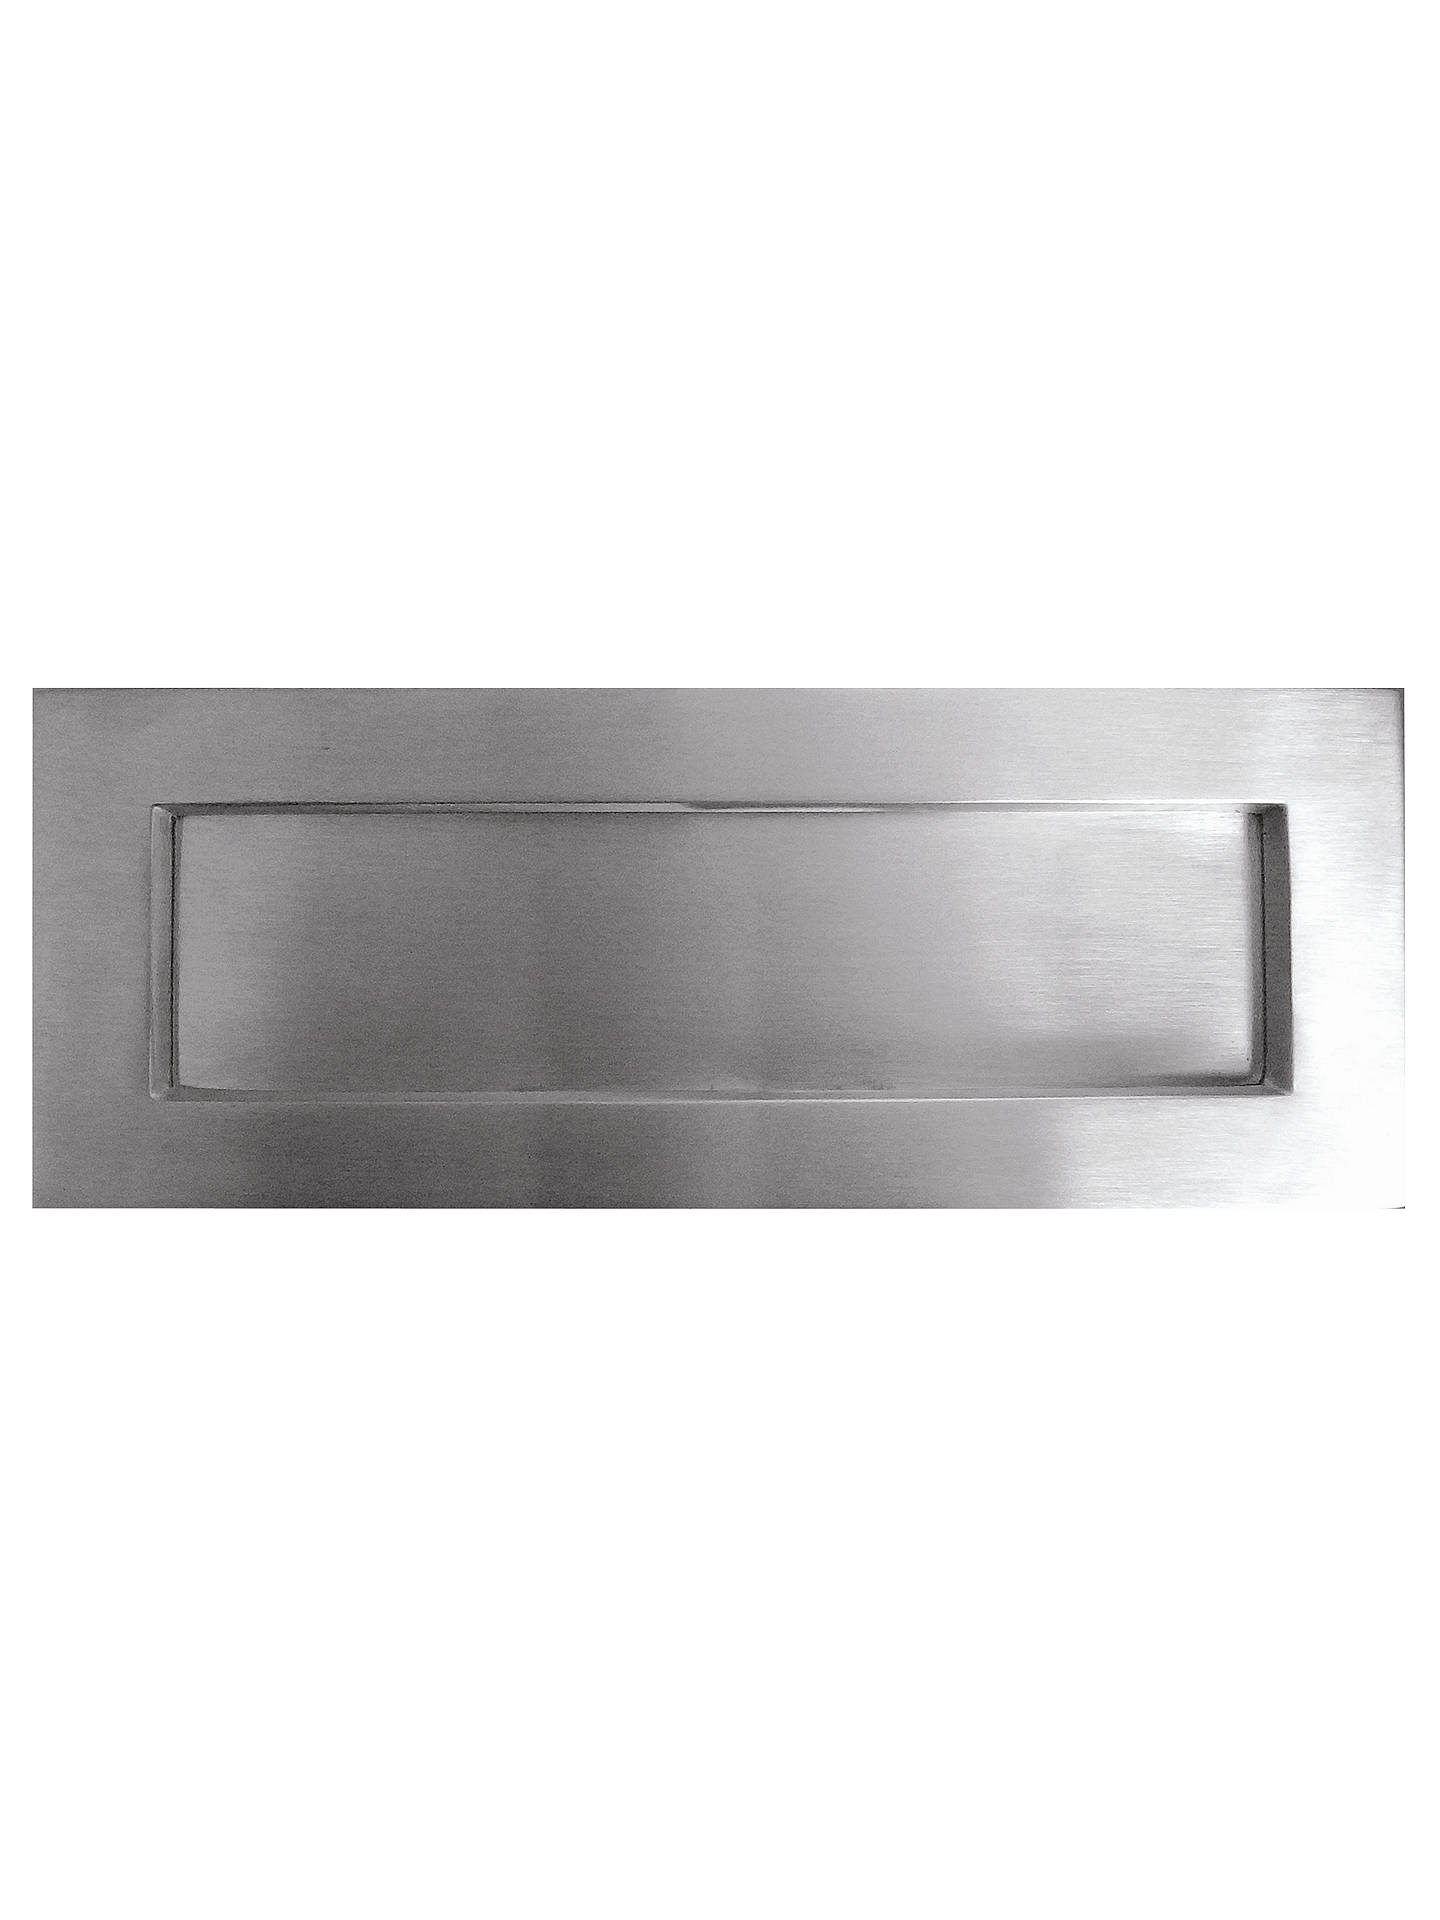 Buy John Lewis & Partners Letterbox Plate, Satin Chrome, H100 x W305cm Online at johnlewis.com